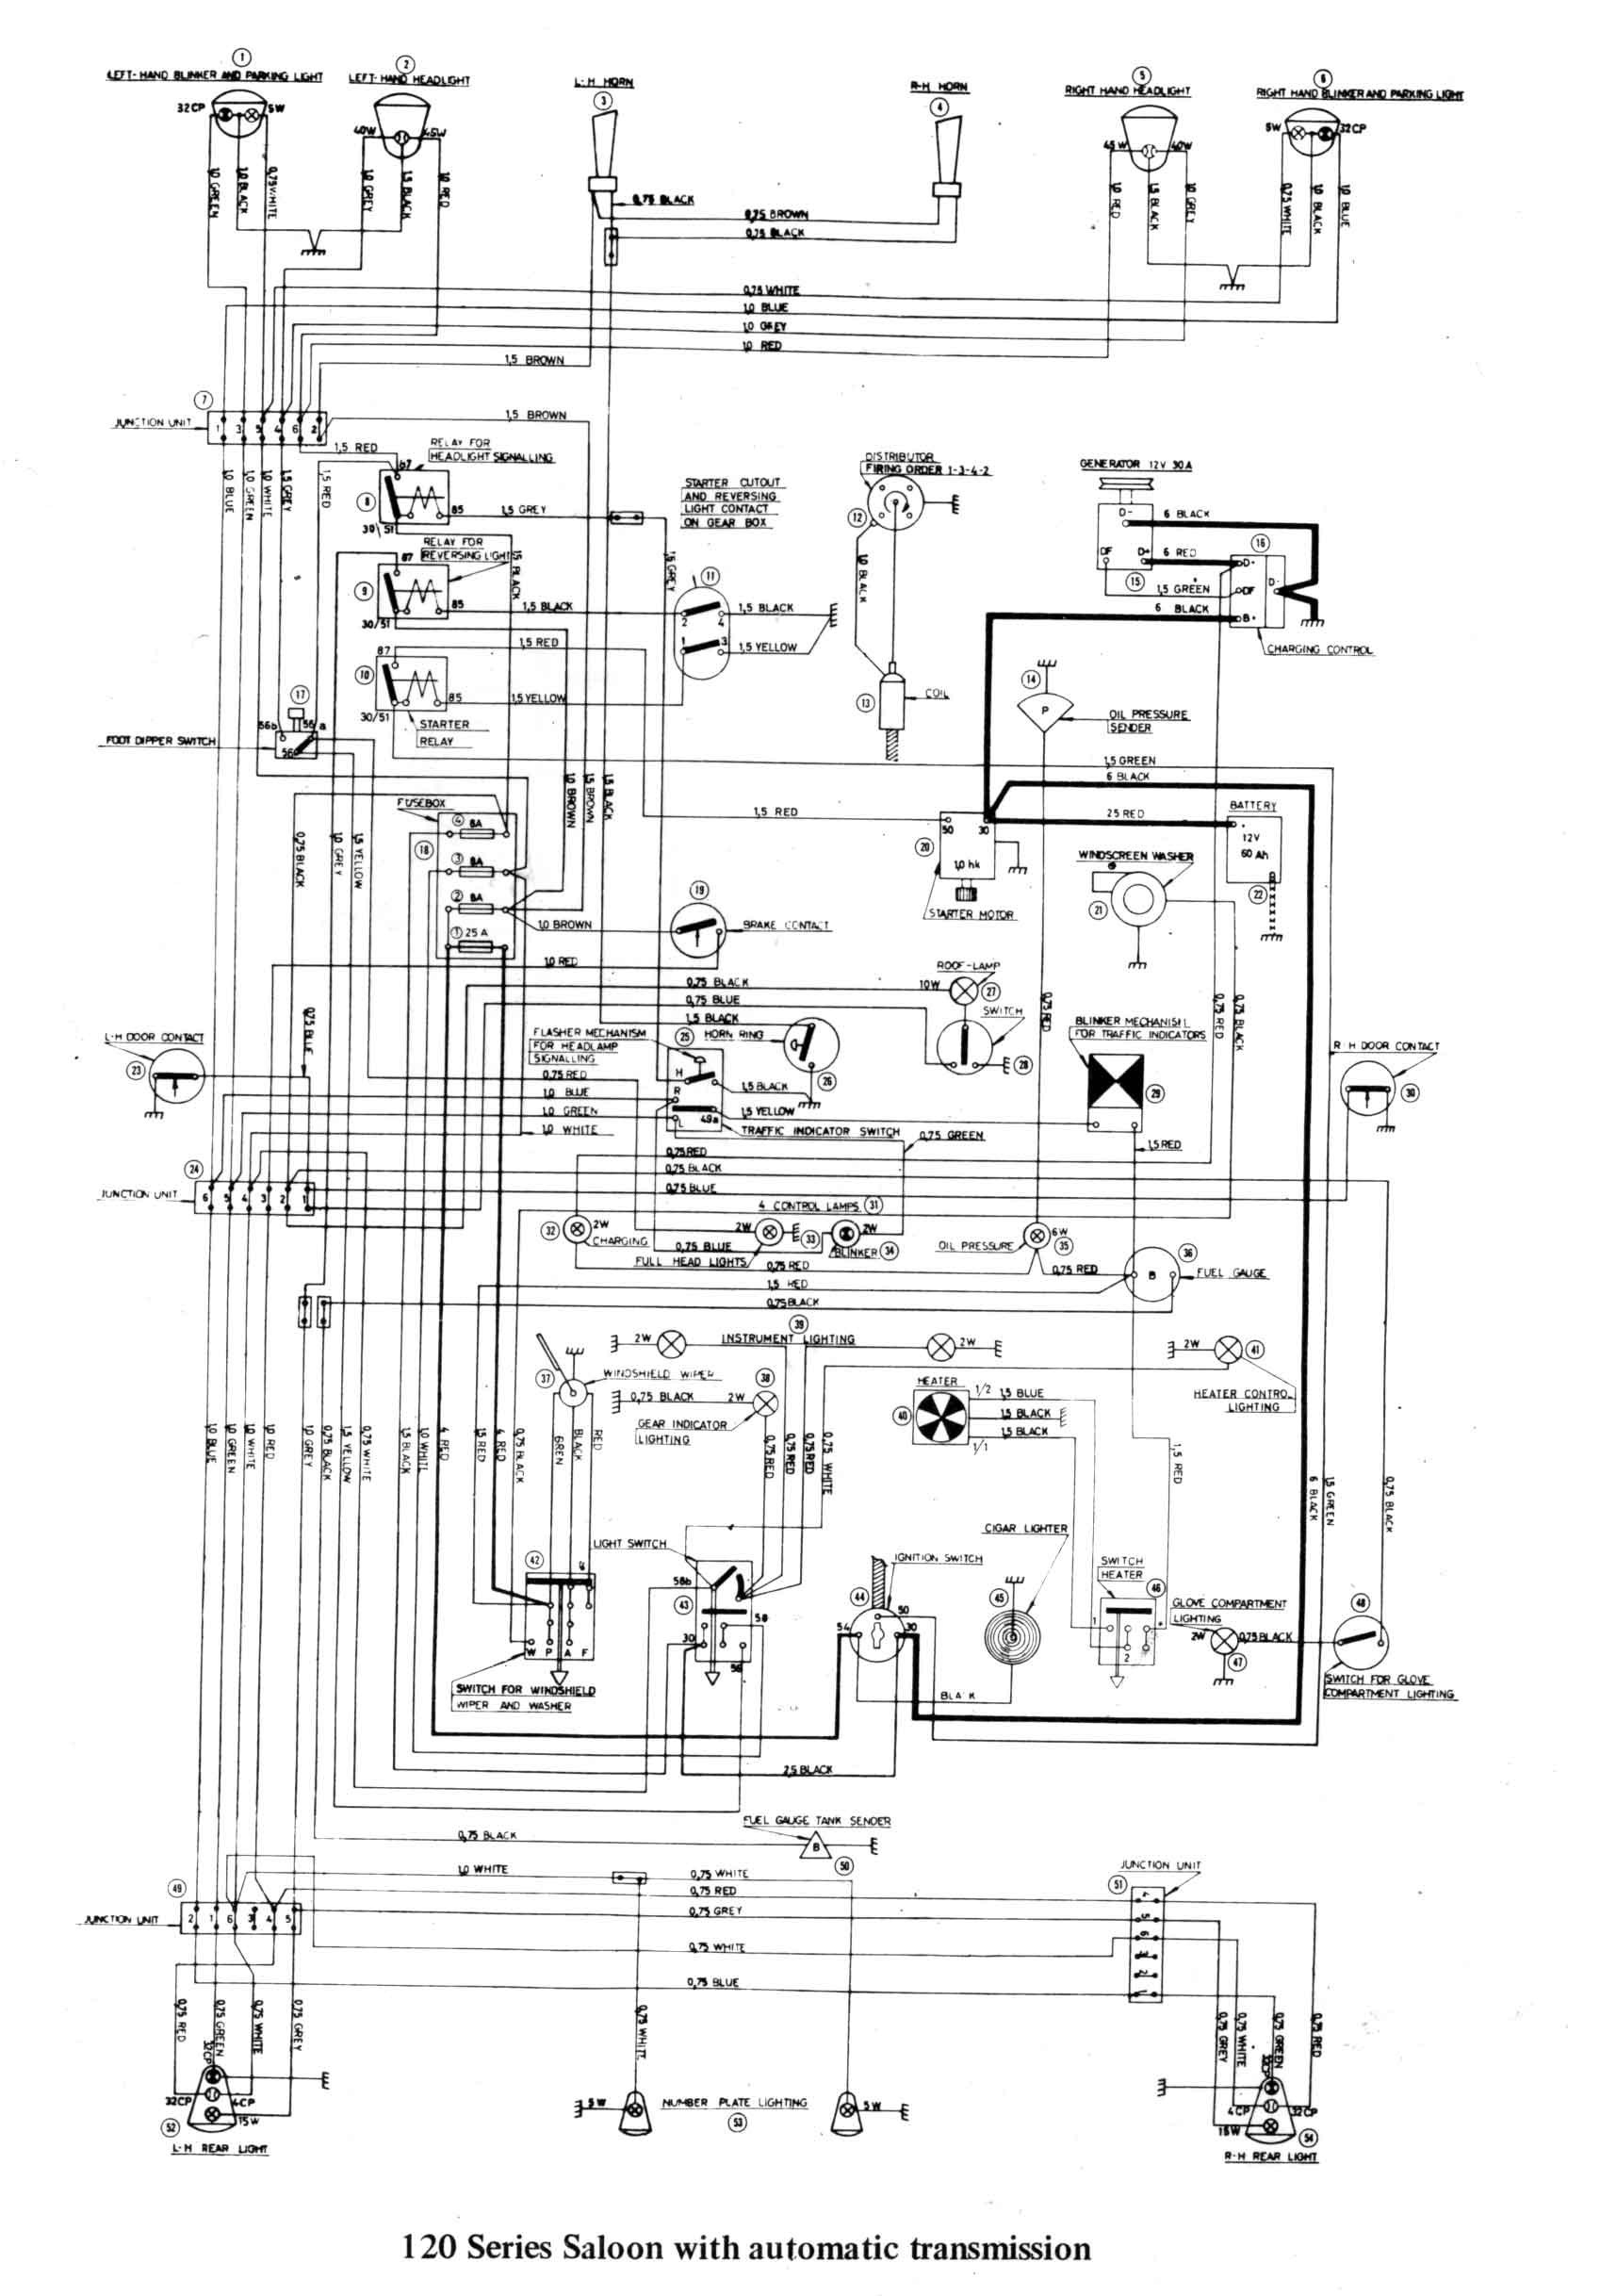 2000 Pontiac Montana Engine Diagram 2000 Volvo V70 Wiring Diagram Trans  Wiring Diagrams • Of 2000